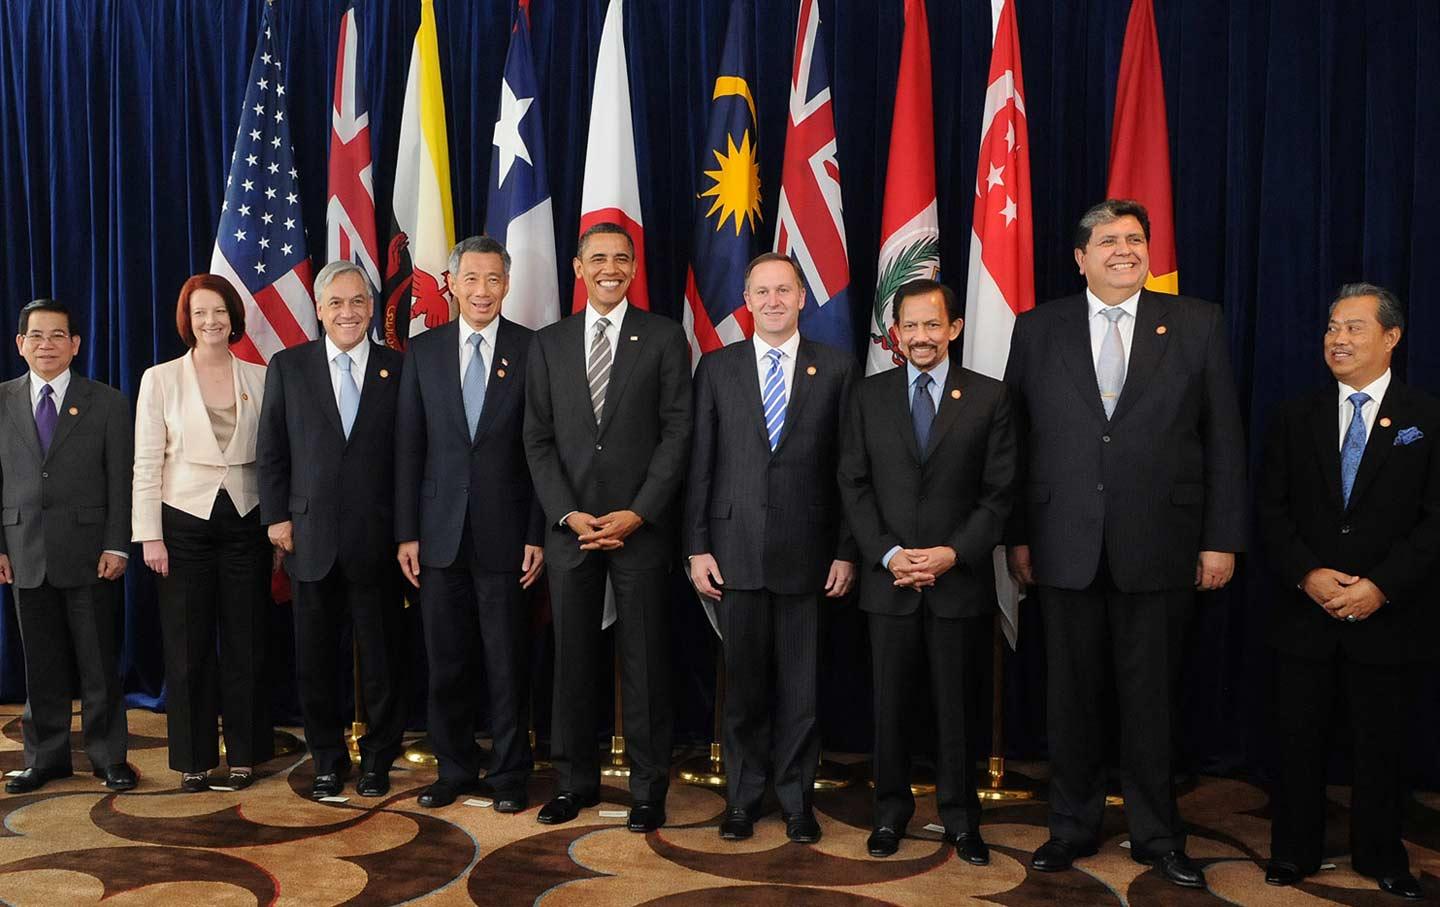 Leaders of member states of the TPP